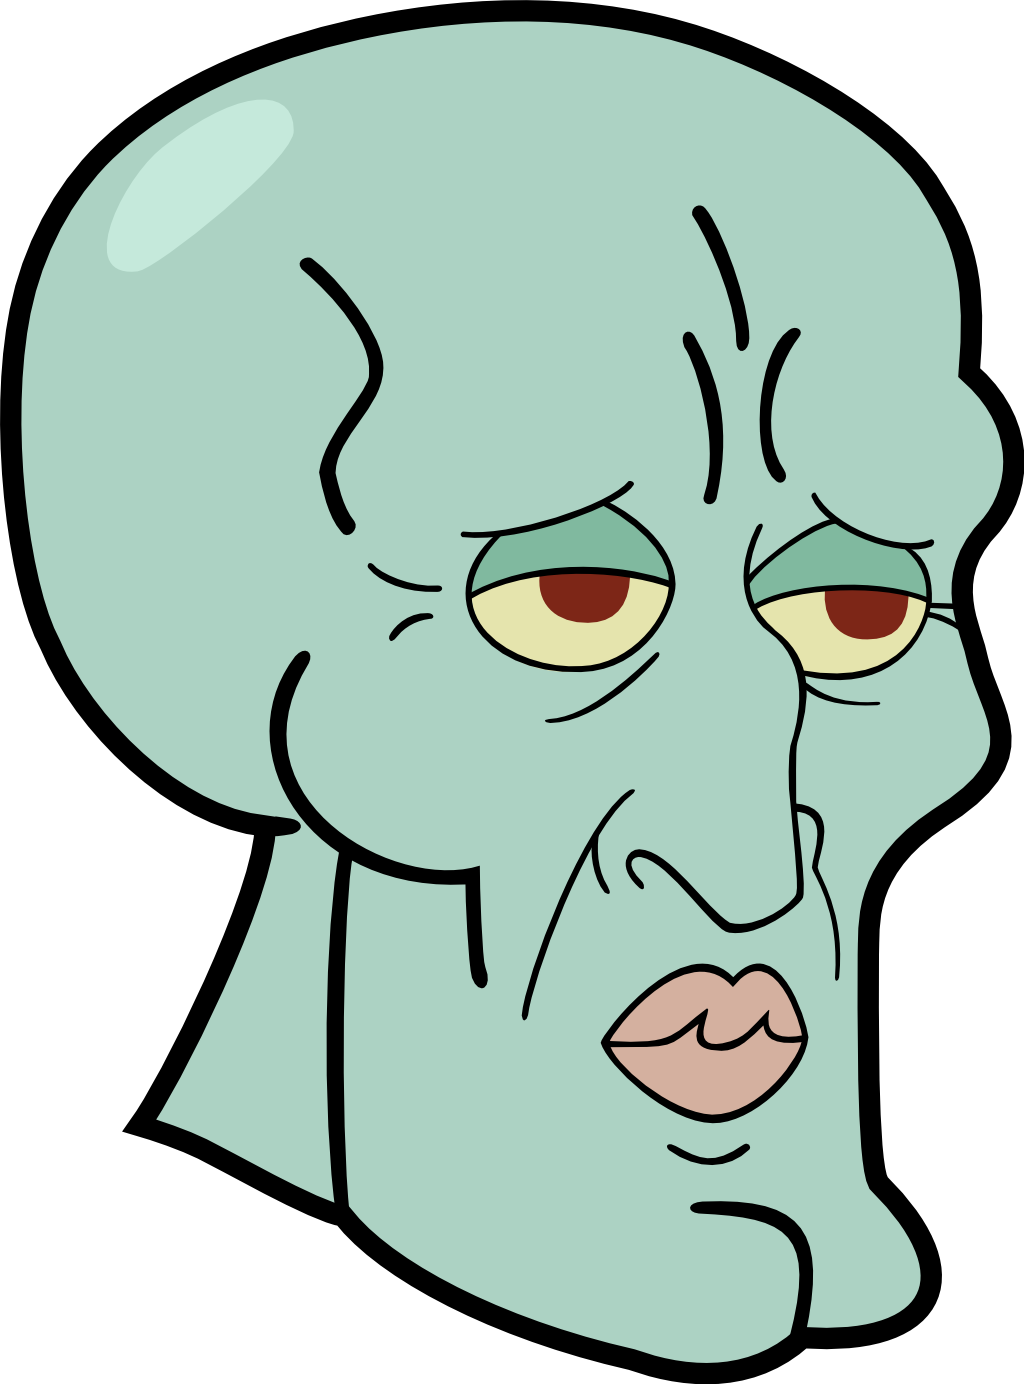 Squidward meme png. Spongebob by bitchpleasedog center